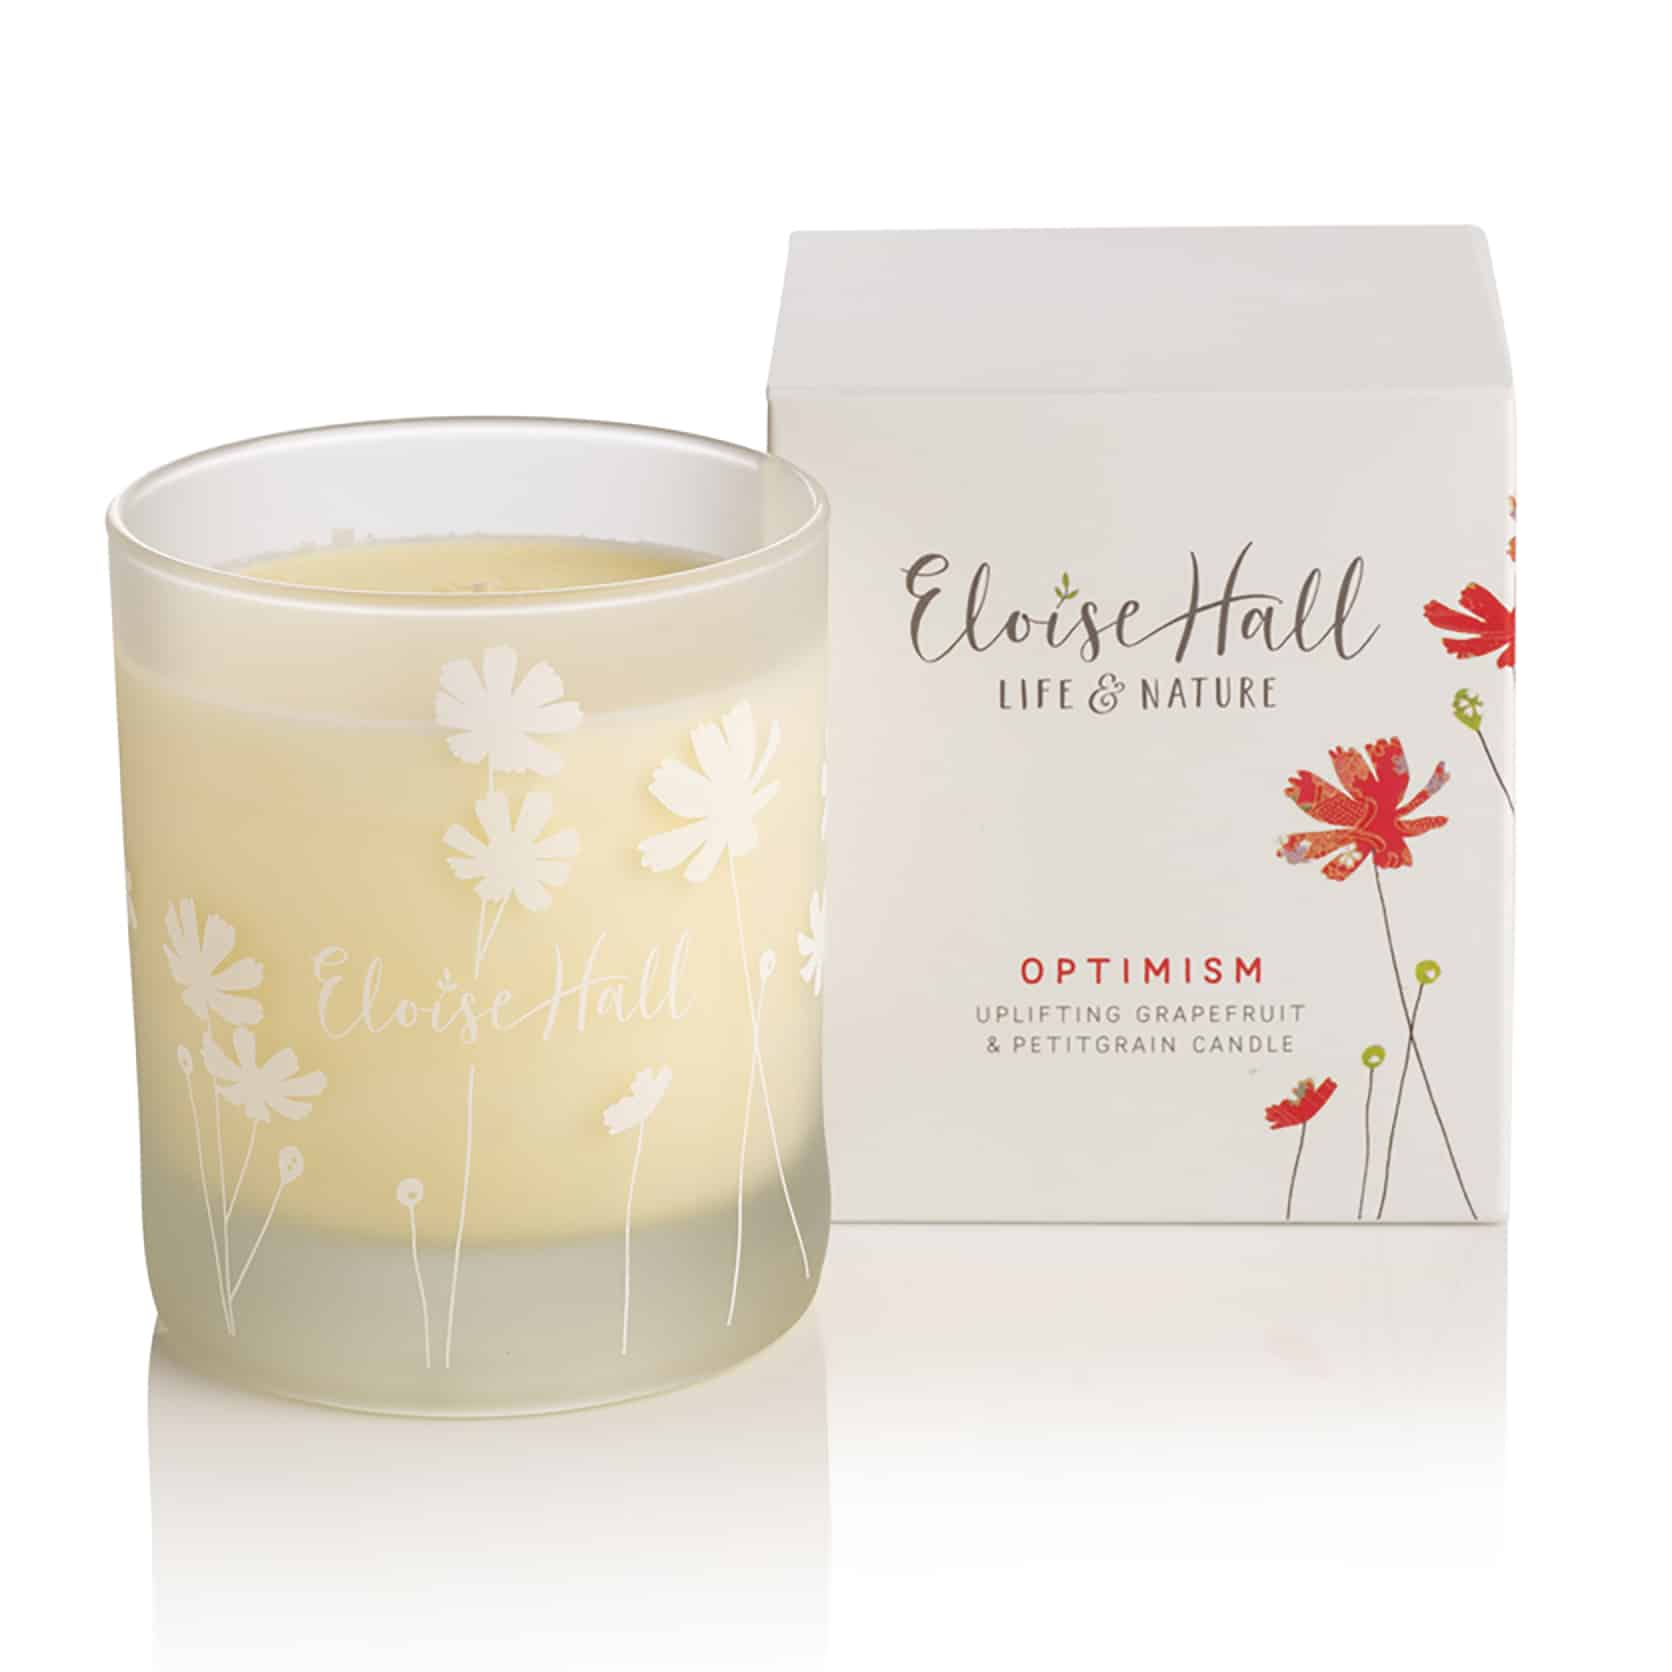 Uplifting grapefruit & petitgrain candle  Be uplifted by the naturally stimulating fragrance of grapefruit & petitgrain. The perfect way to reawaken your senses, at the end of a long day.  Blended and hand-poured with care, this little jar of pure pleasure is made from the finest essential oils and will enhance your mood with its therapeutic benefits.  Our luxurious candles use natural wax, which is kinder to you and the environment, giving you a clean, slow burn.  100% natural ingredients handmade in Engla